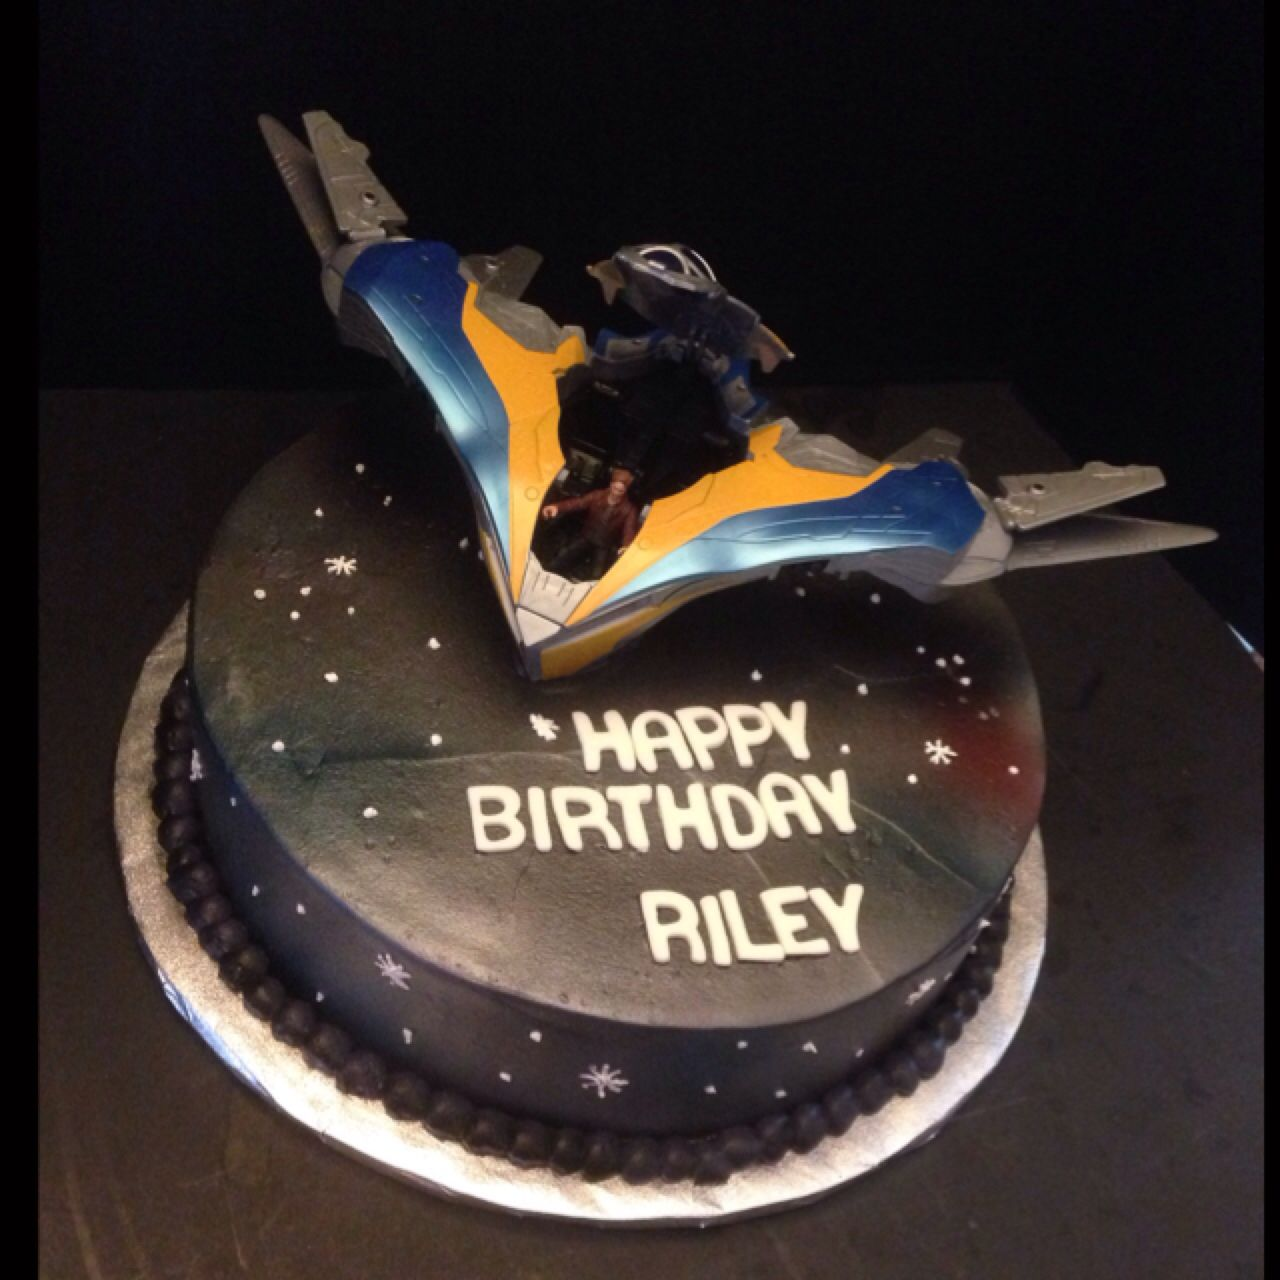 Guardians of the galaxy birthday cake for my fiancé who is crazy ...